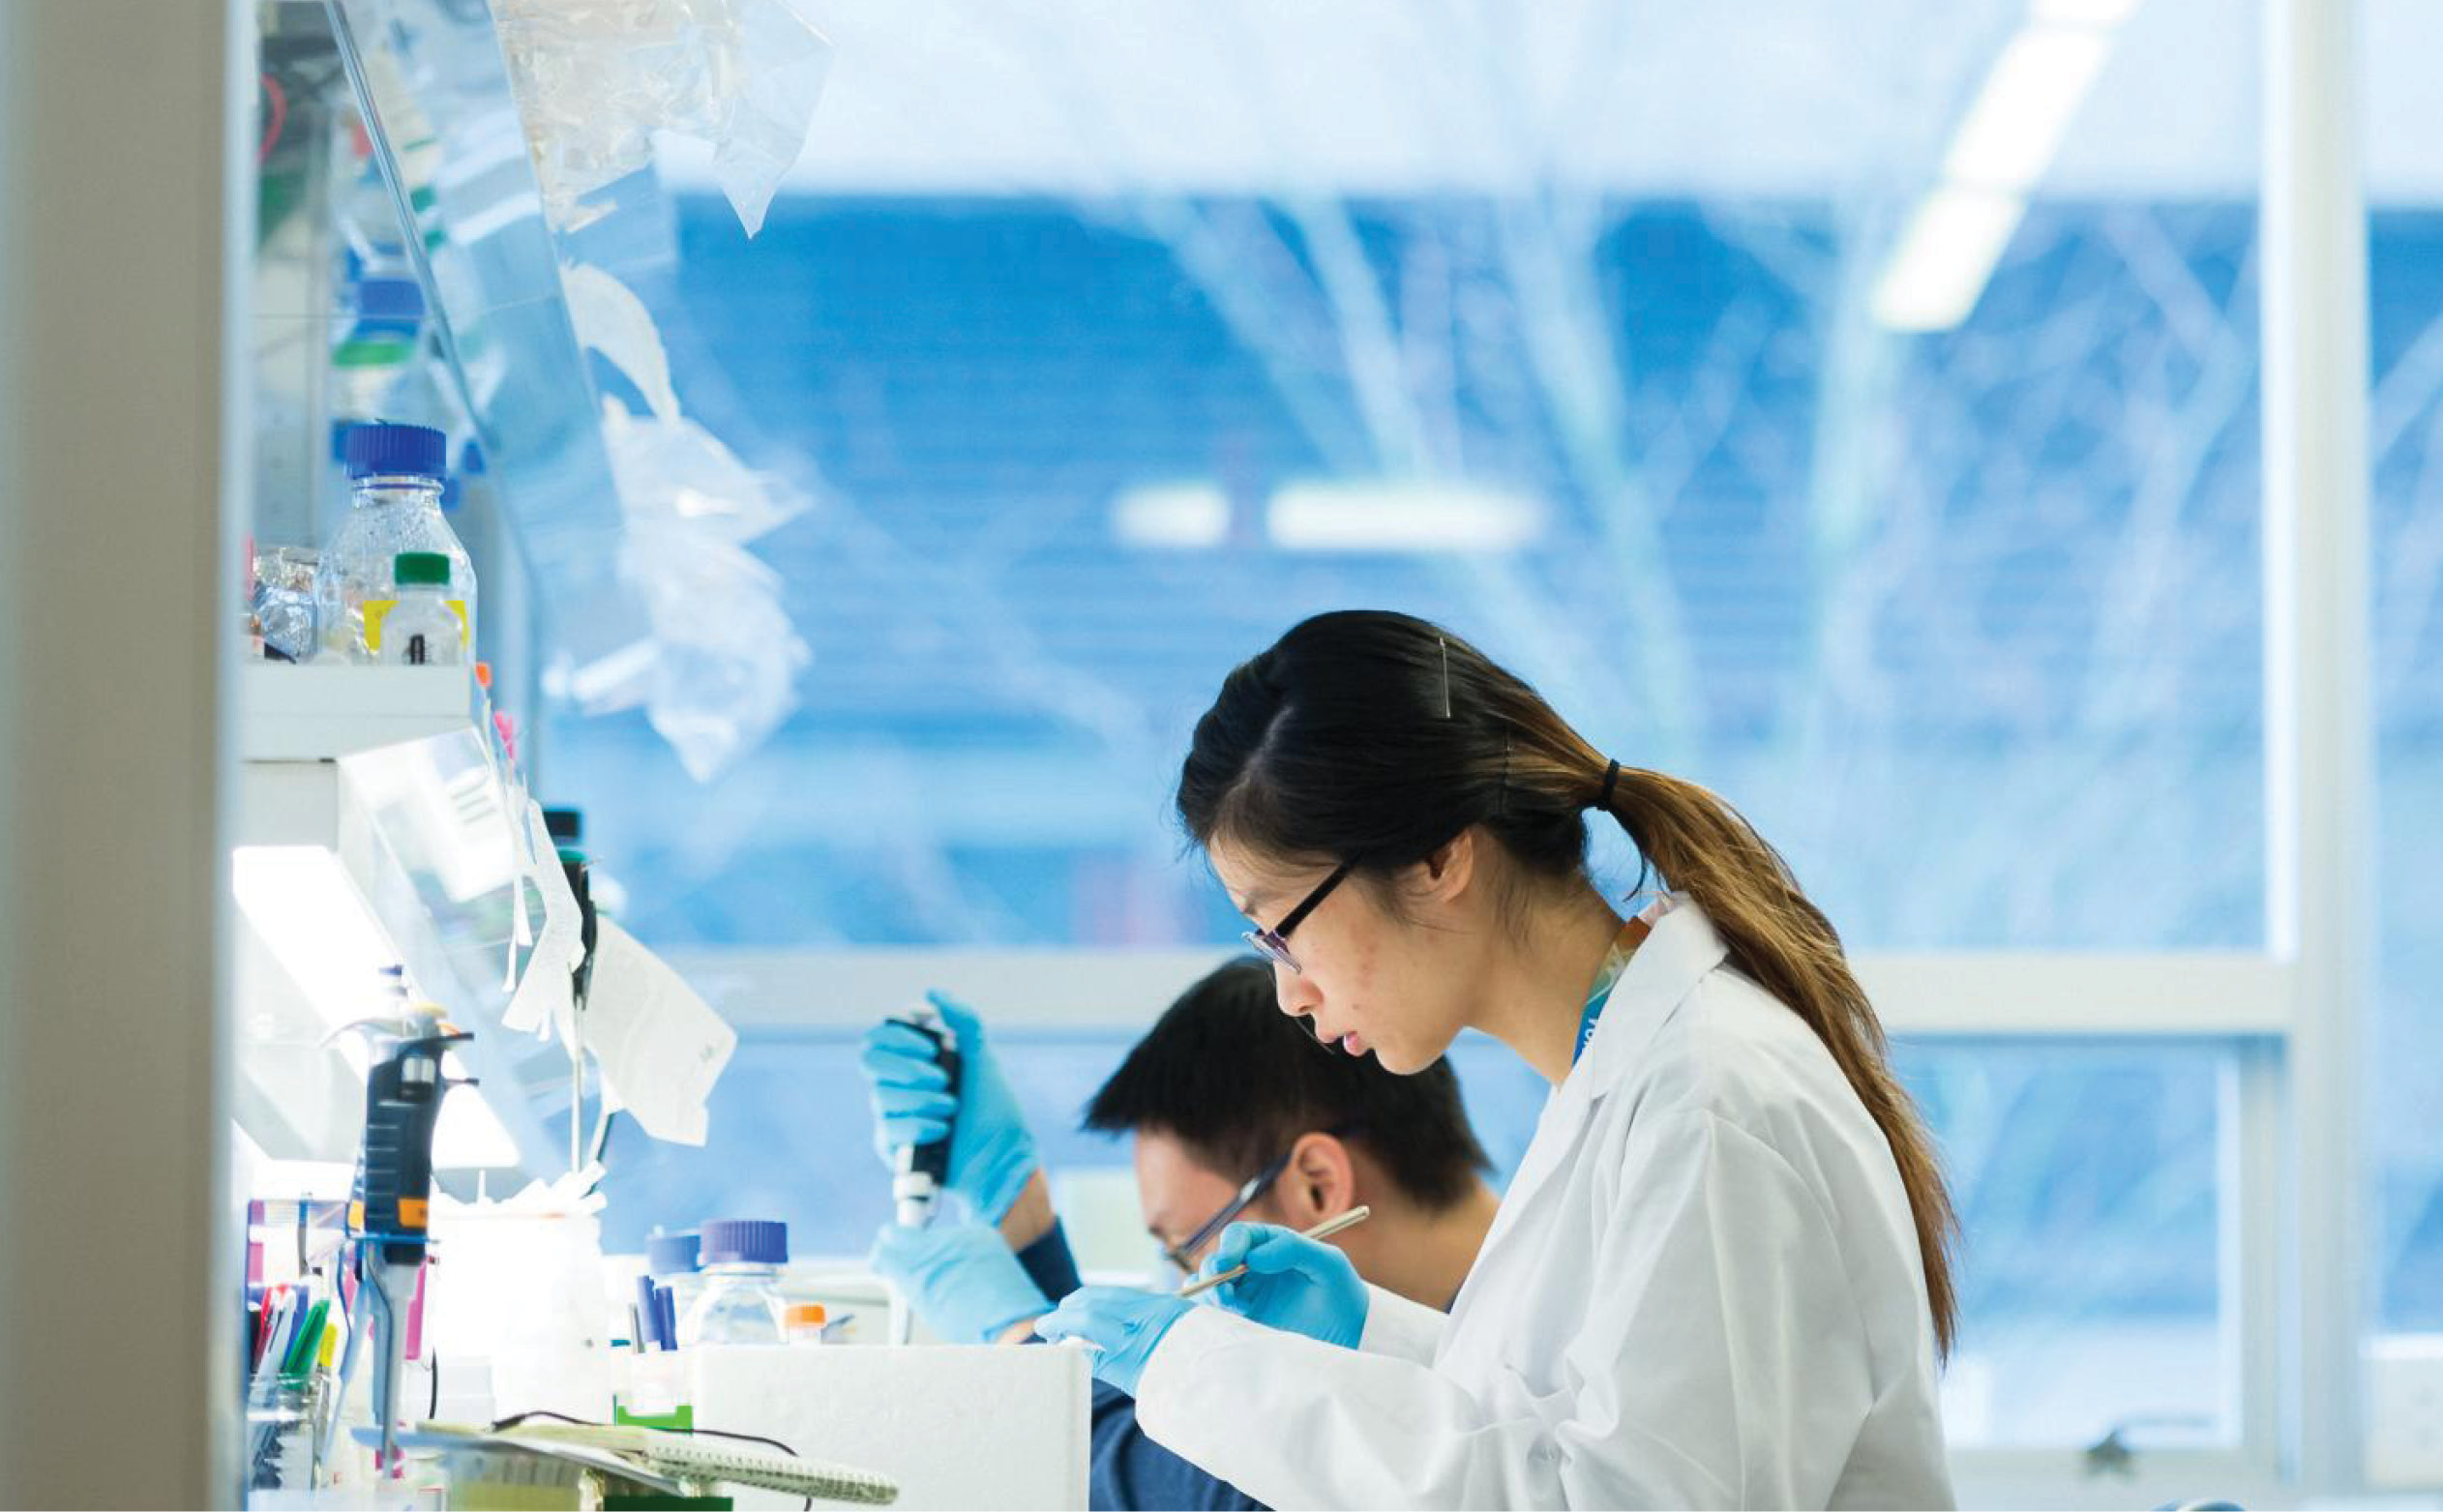 a female scientist working in a lab